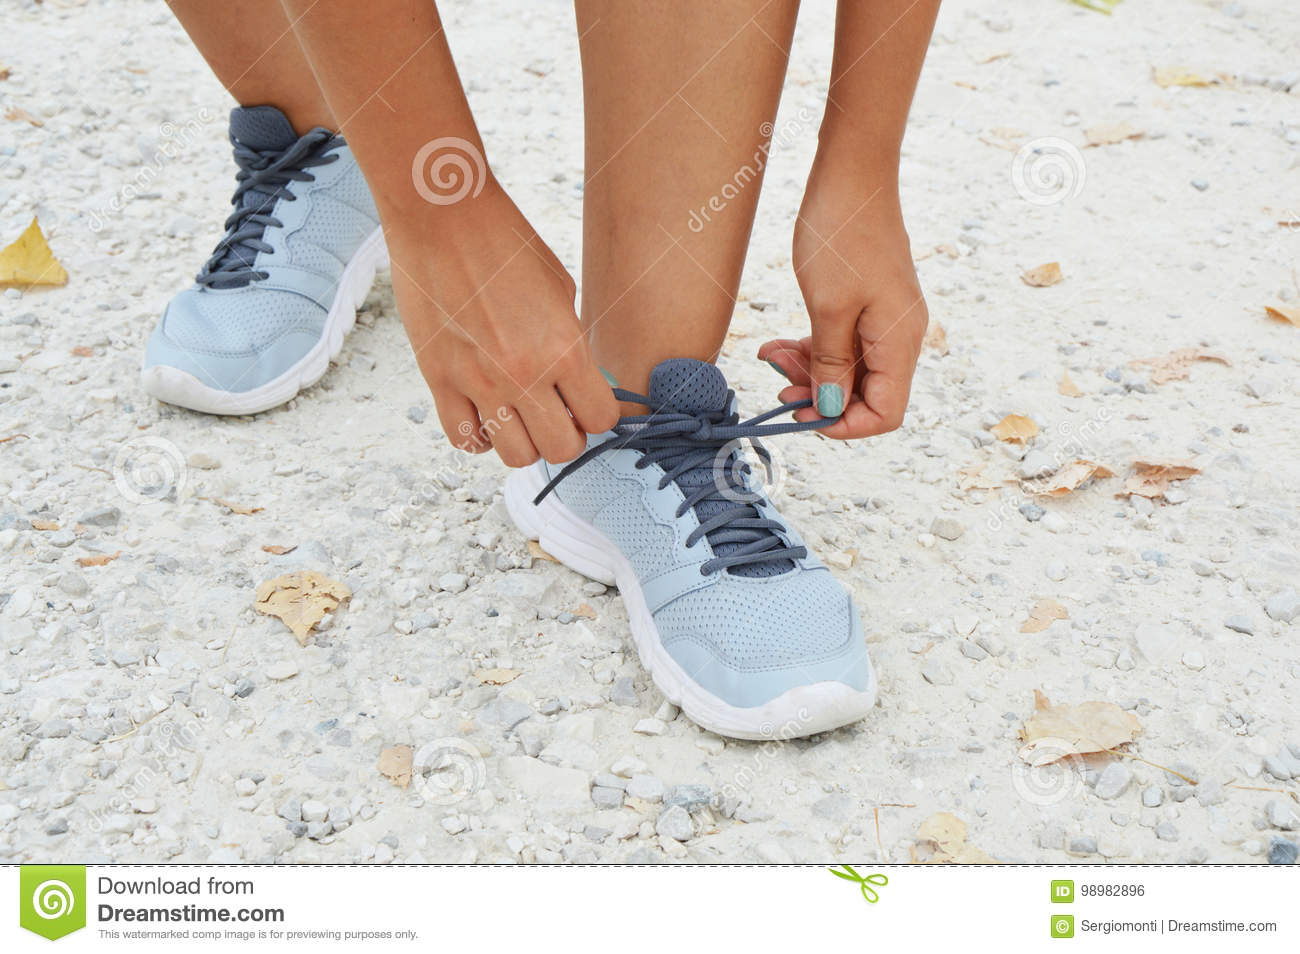 Running shoes. Woman tying shoe laces. Female sport fitness runner getting ready for jogging outdoors on forest path in spring